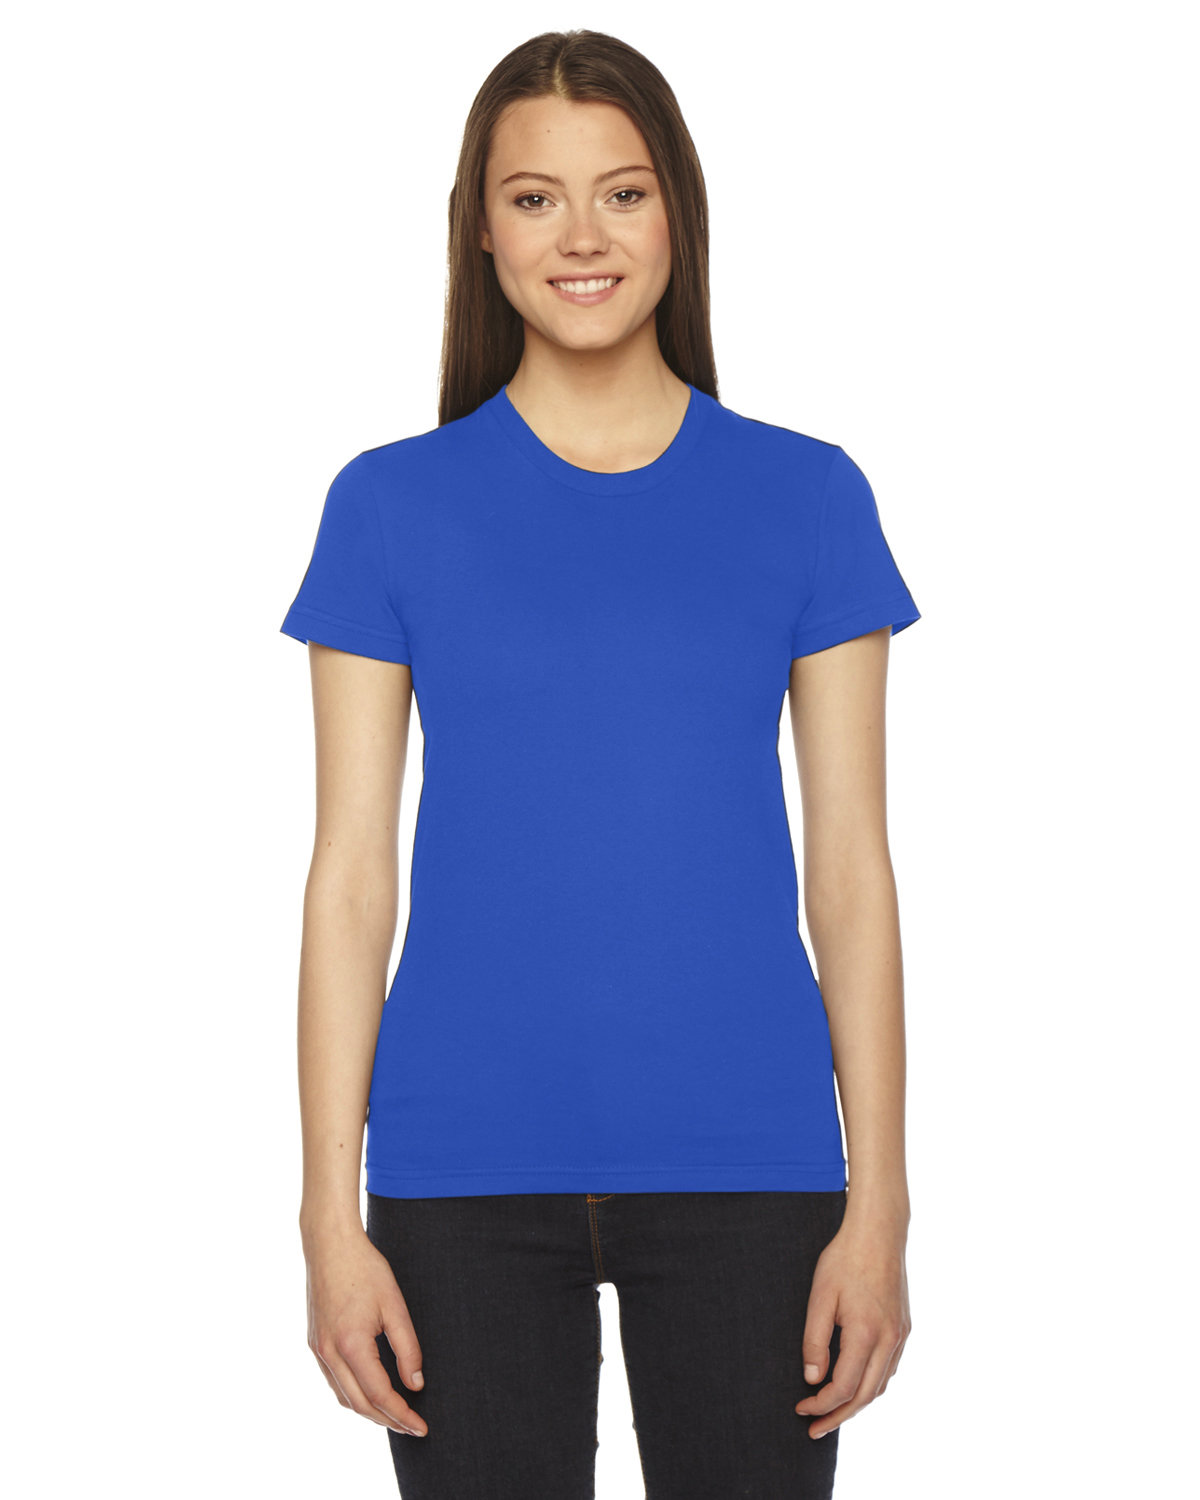 American Apparel Ladies' Fine Jersey Short-Sleeve T-Shirt ROYAL BLUE